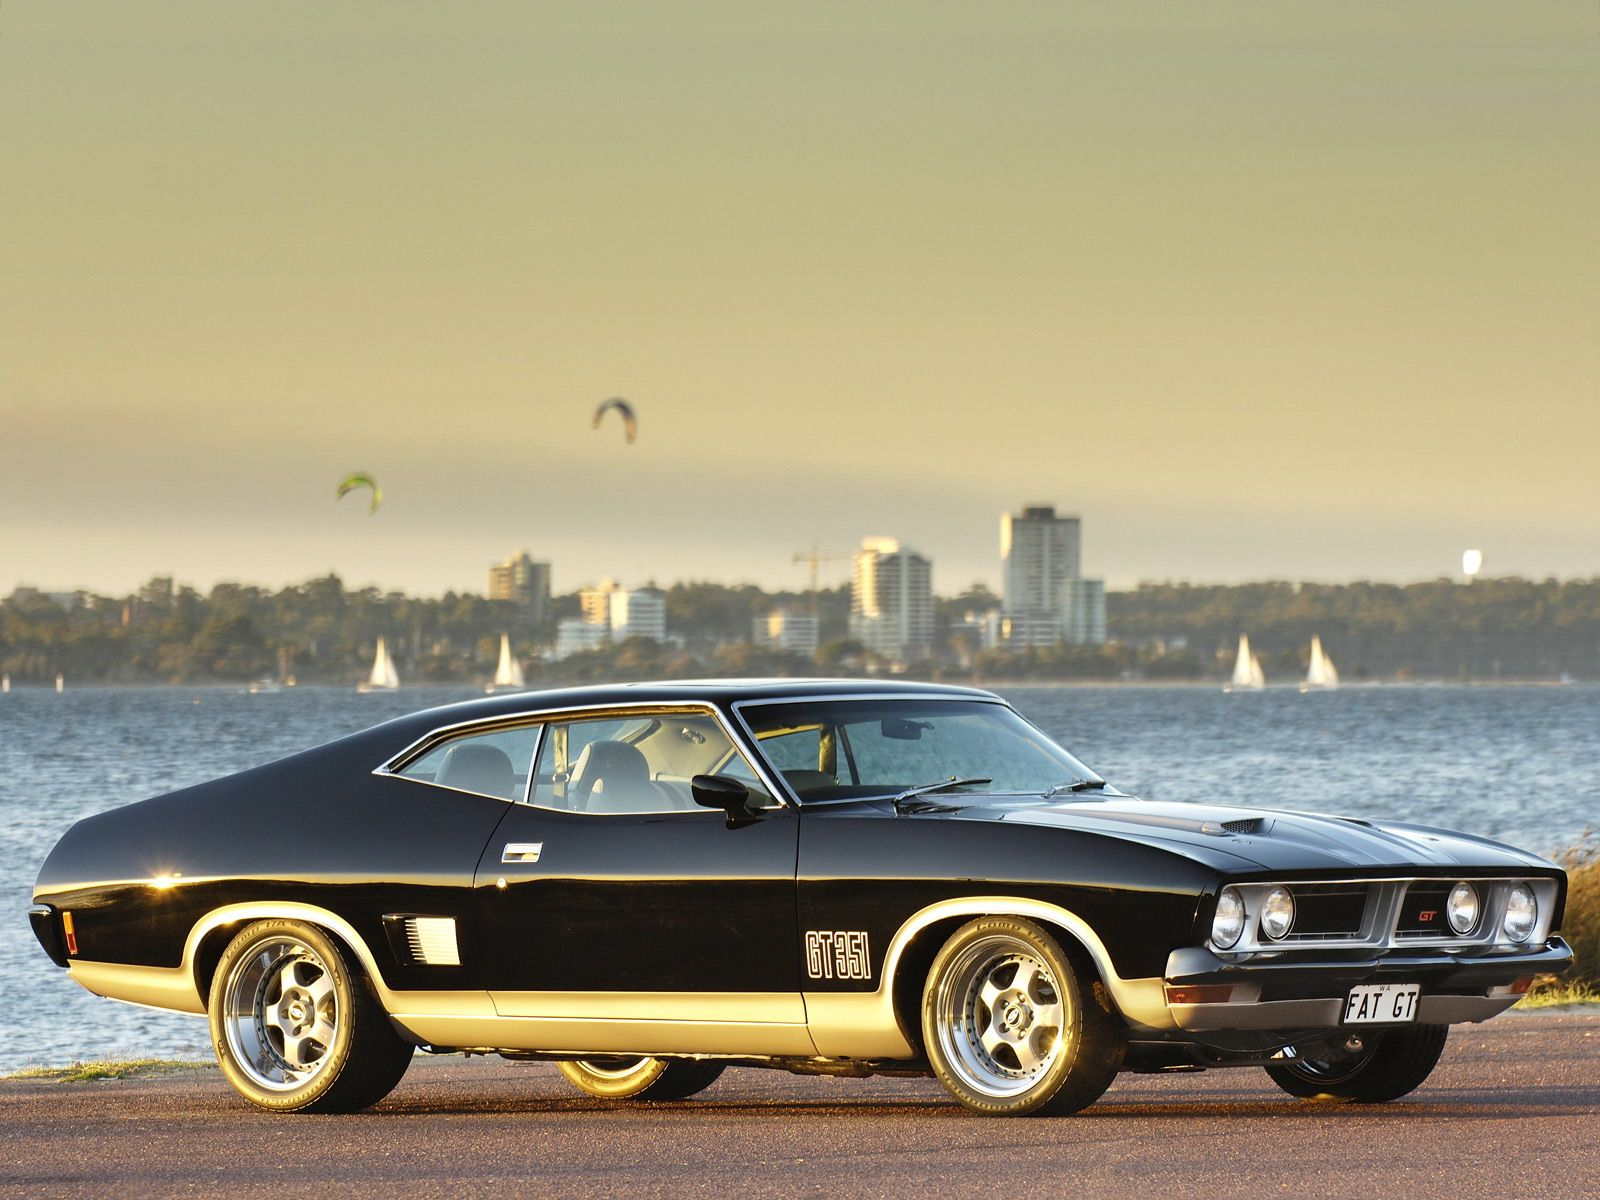 1974 Ford Falcon 351 Gt Xb Http Pinterest Com Quinnproperties